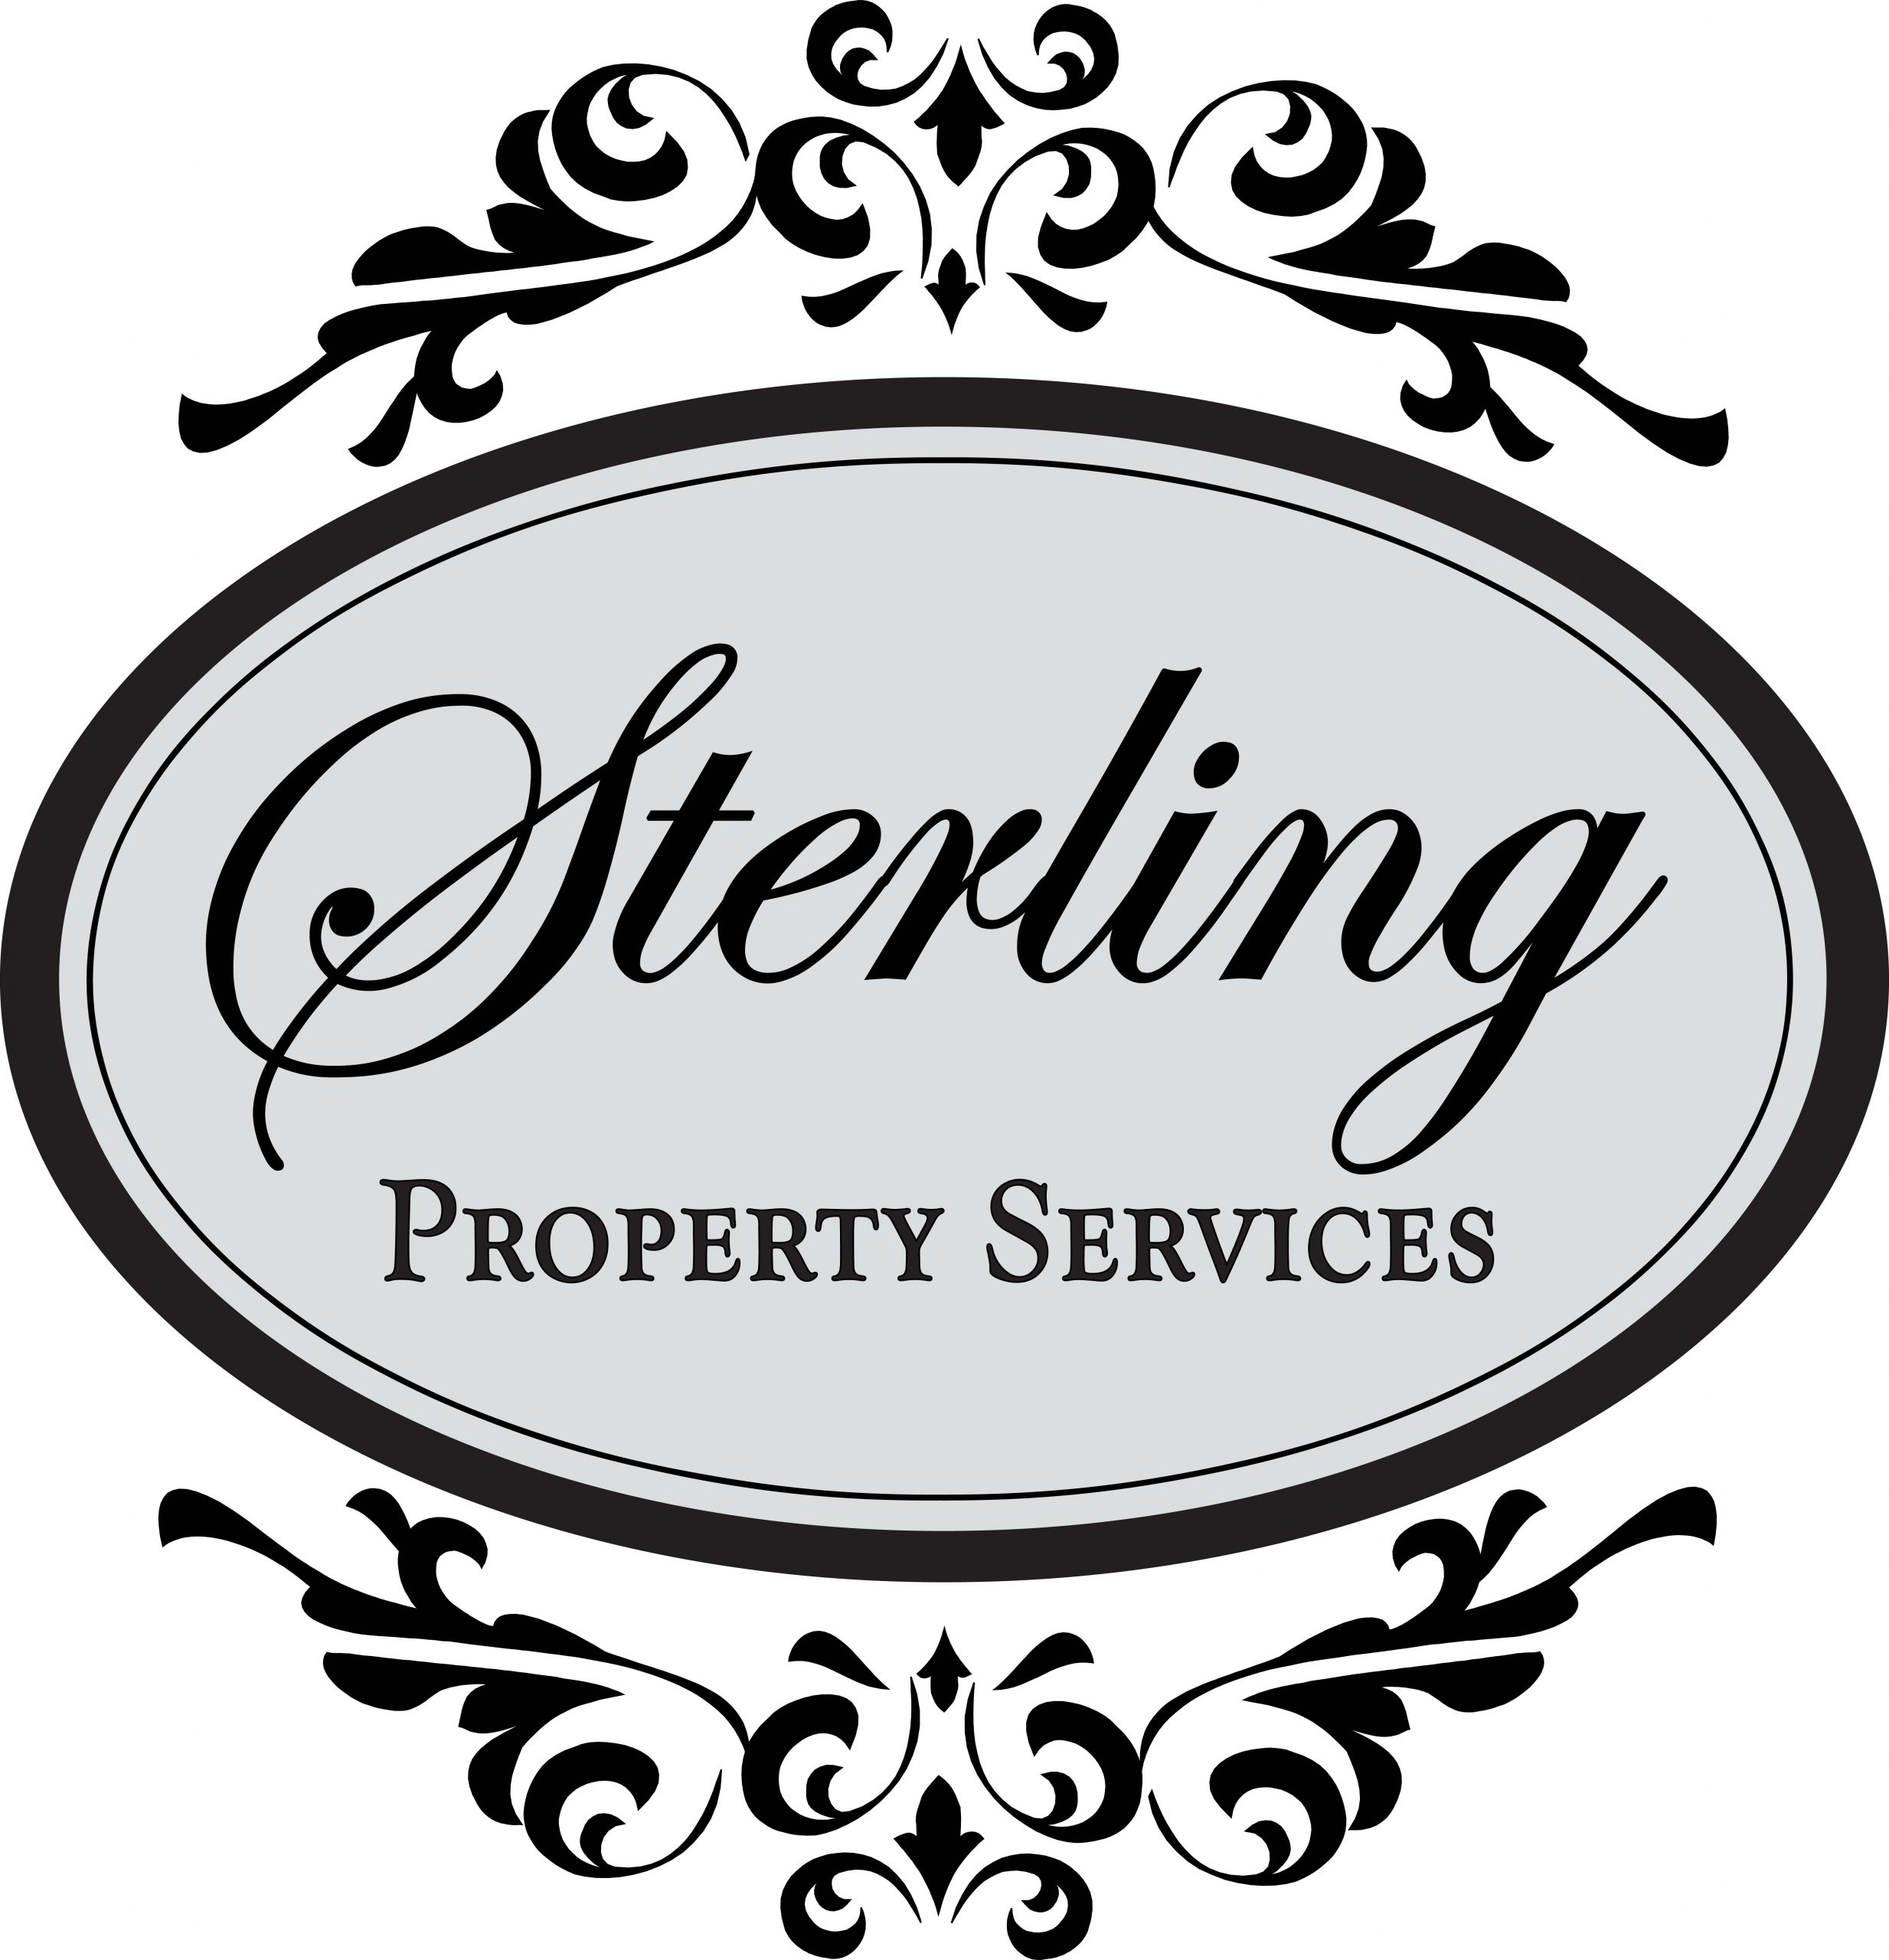 Sterling Property Services